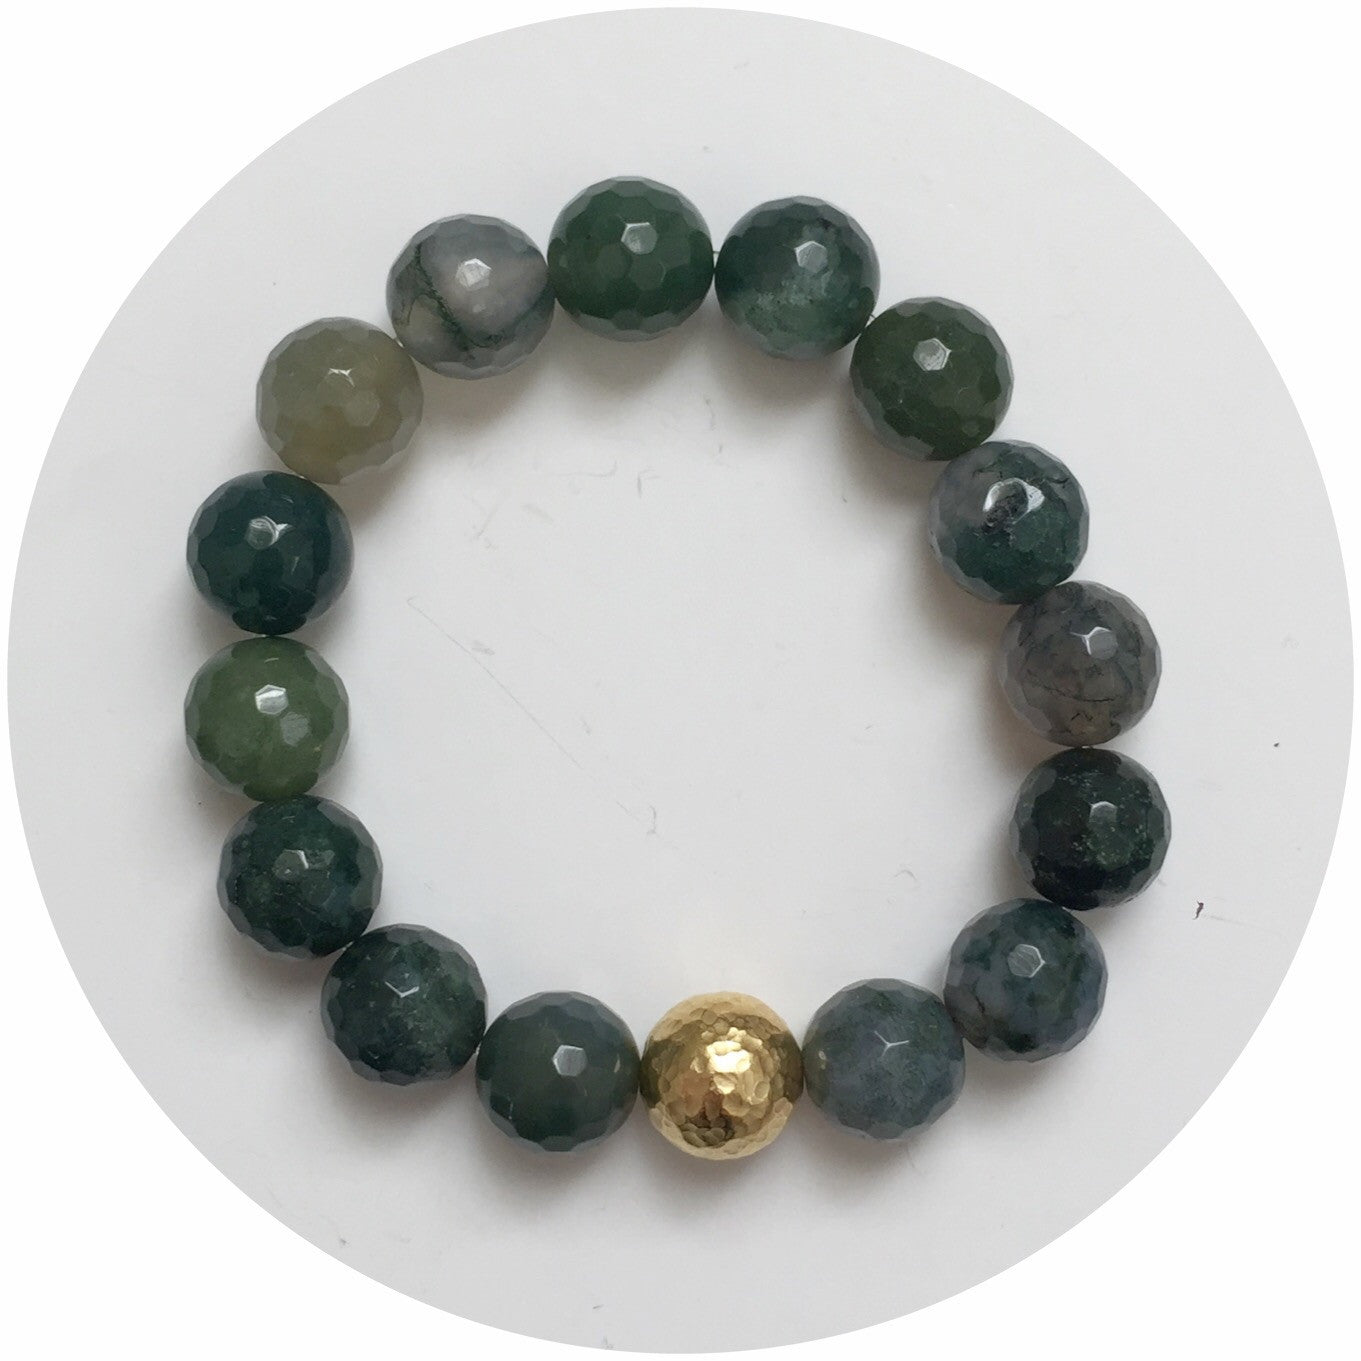 Moss Green Jade with Hammered Gold Accent - Oriana Lamarca LLC